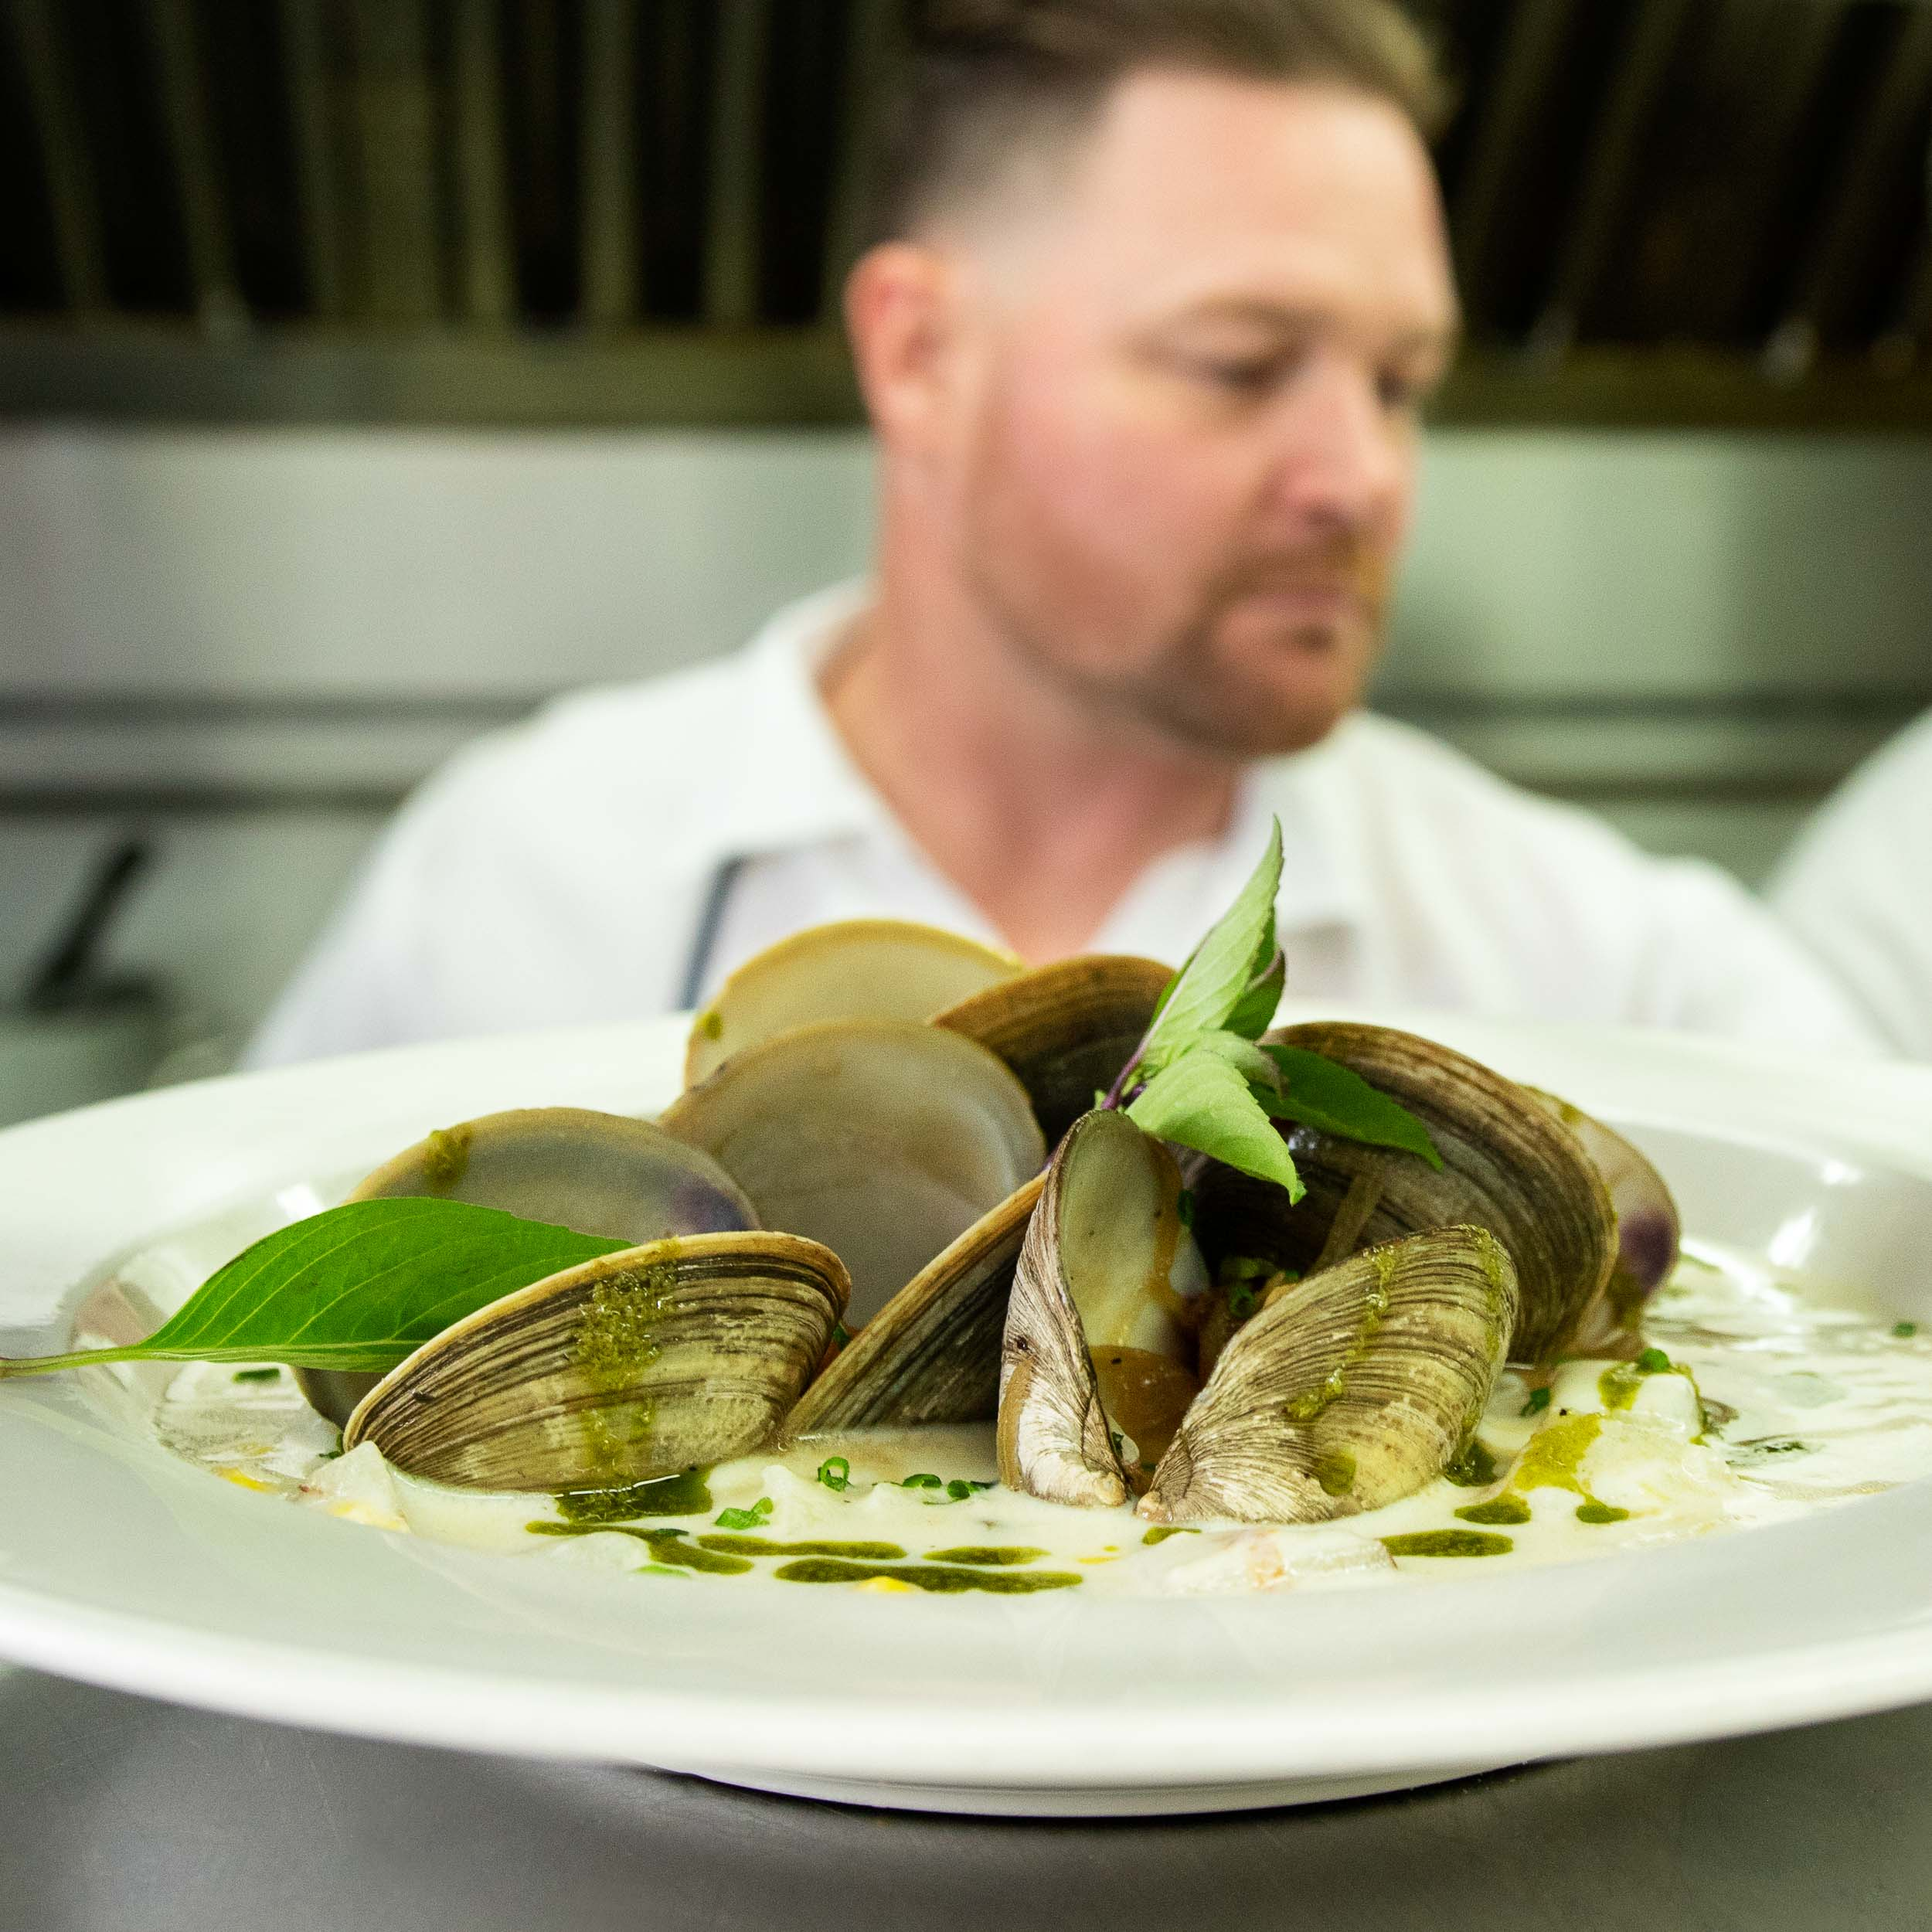 Chef with Mussels in Kitchen